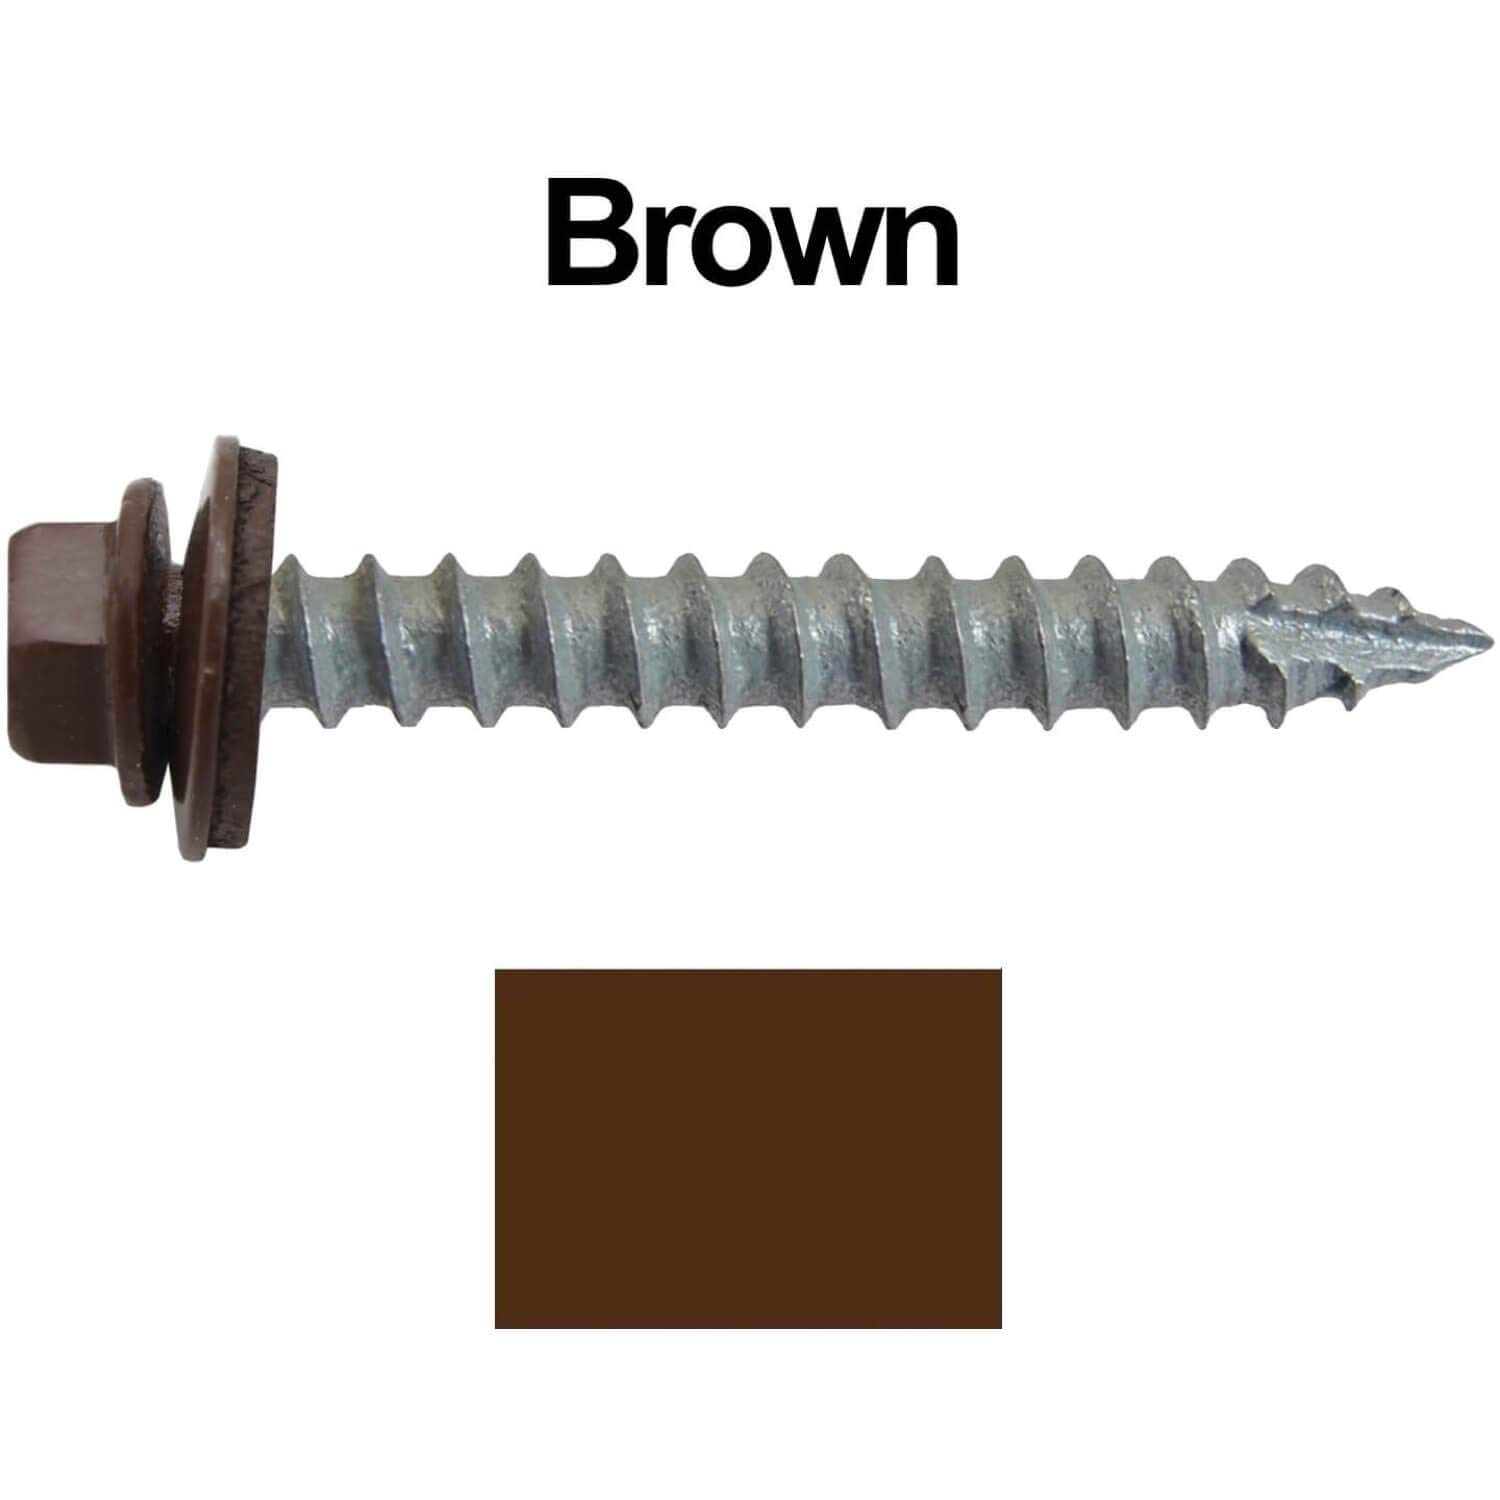 Self Starting//Tapping Metal to woodsheet Metal siding Screws with EPDM Washer #14 Metal Roofing Screws: 250 Screws x 2 Ocean Blue Hex Head Sheet Metal Roof Screw for Corrugated Roofing